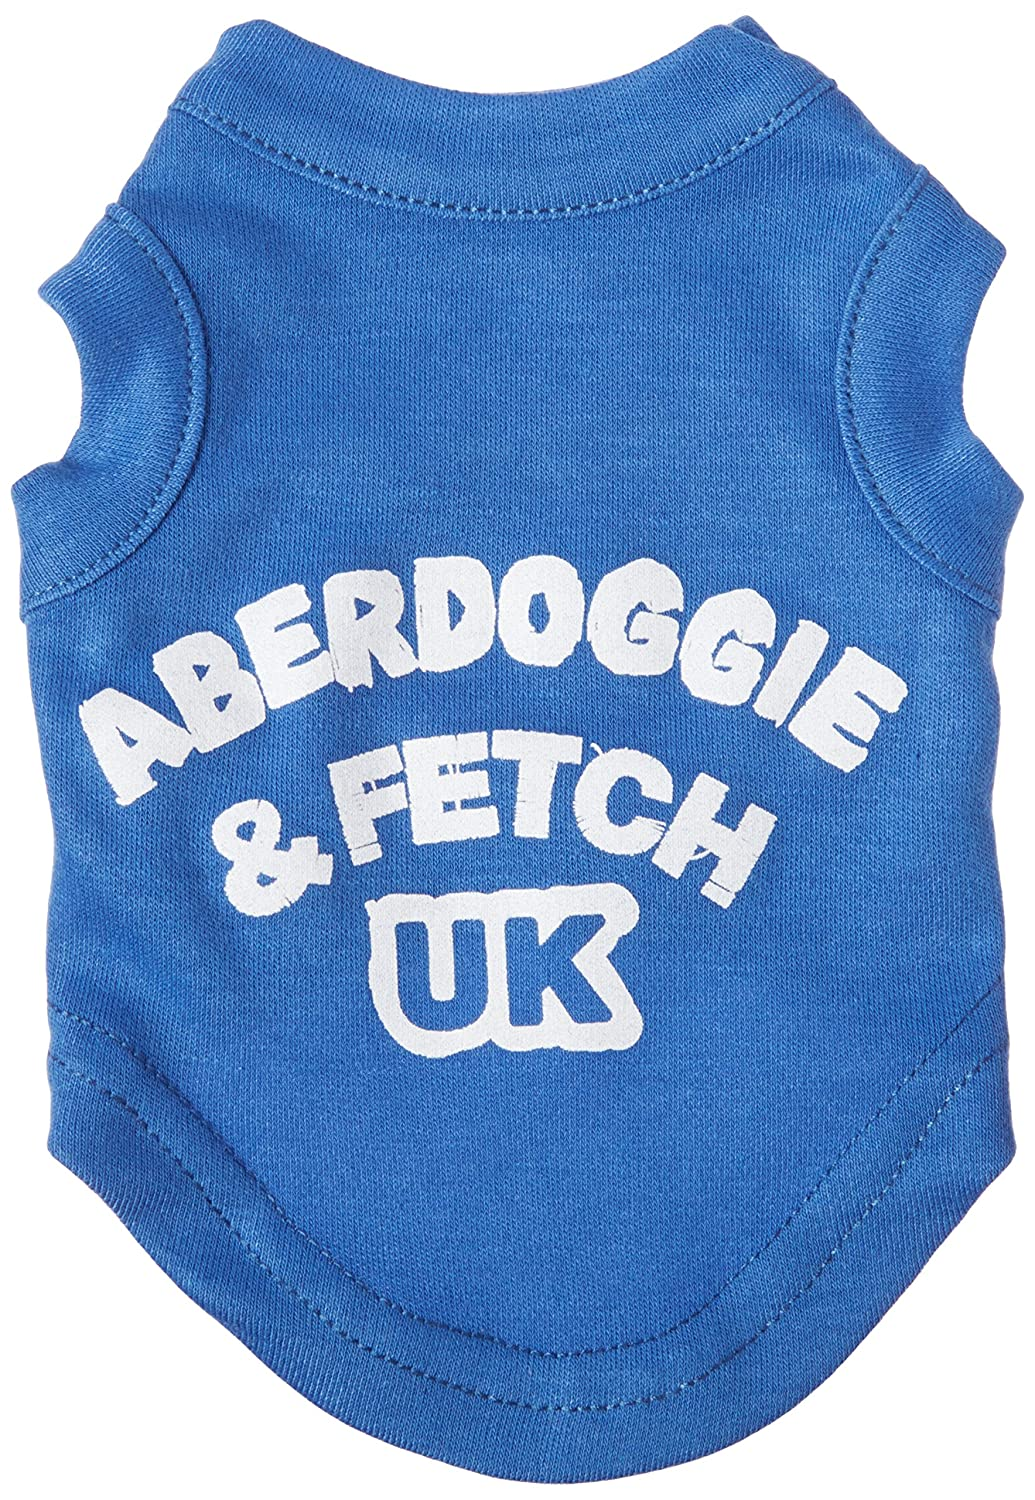 bluee Mirage Pet Products 8-Inch Aberdoggie UK Screenprint Shirts, X-Small, bluee